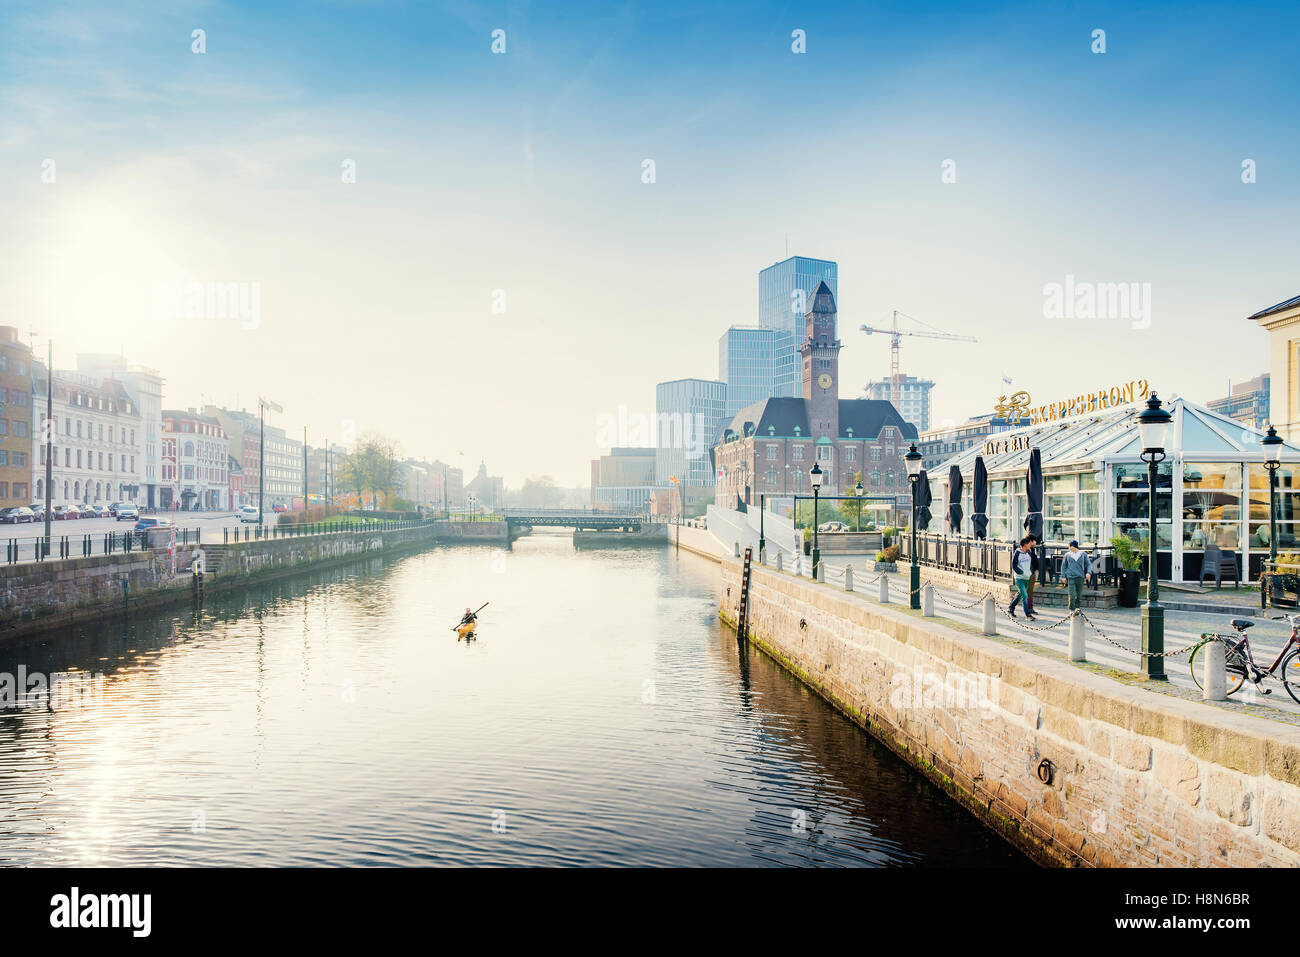 Malmo Live concert hall and Central Station by river, Sweden, Skane - Stock Image